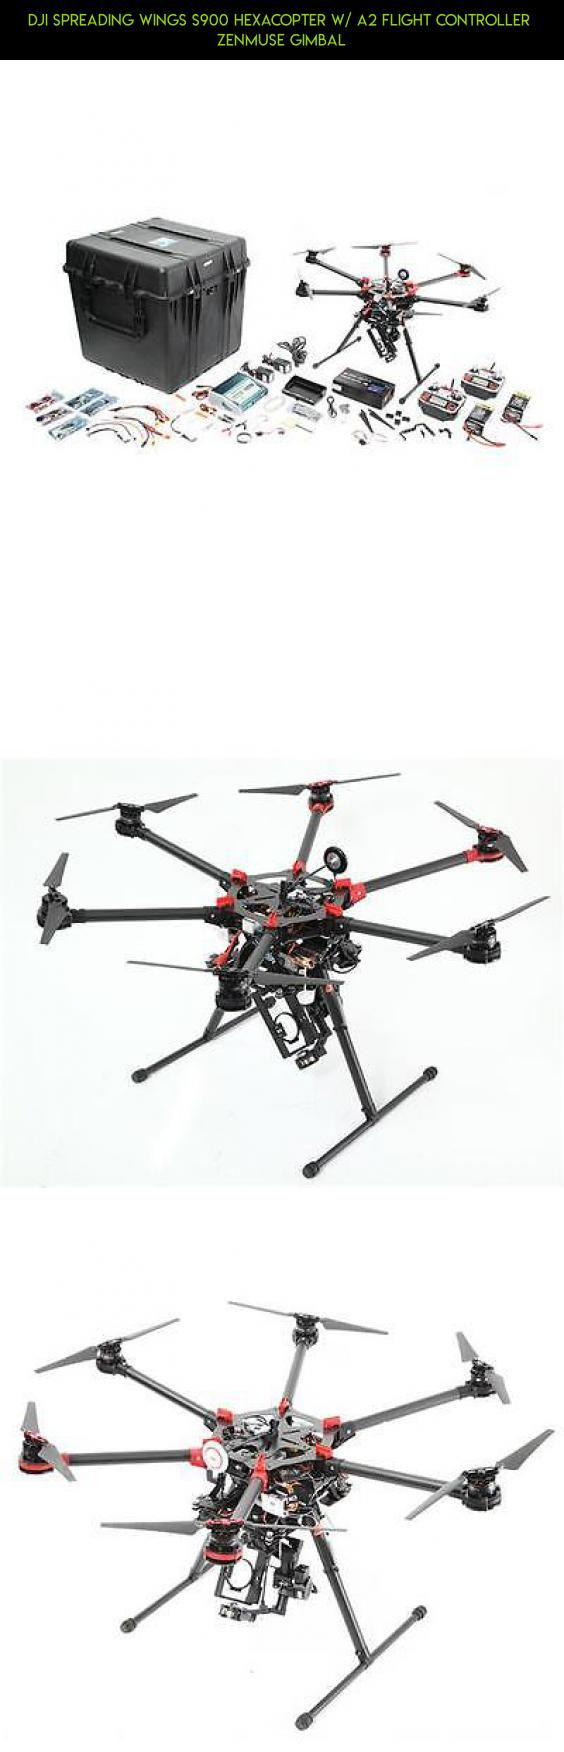 DJI Spreading Wings S900 Hexacopter w/ A2 Flight Controller  Zenmuse Gimbal #technology #s900 #tech #kit #plans #camera #products #gadgets #dji #shopping #parts #racing #drone #fpv